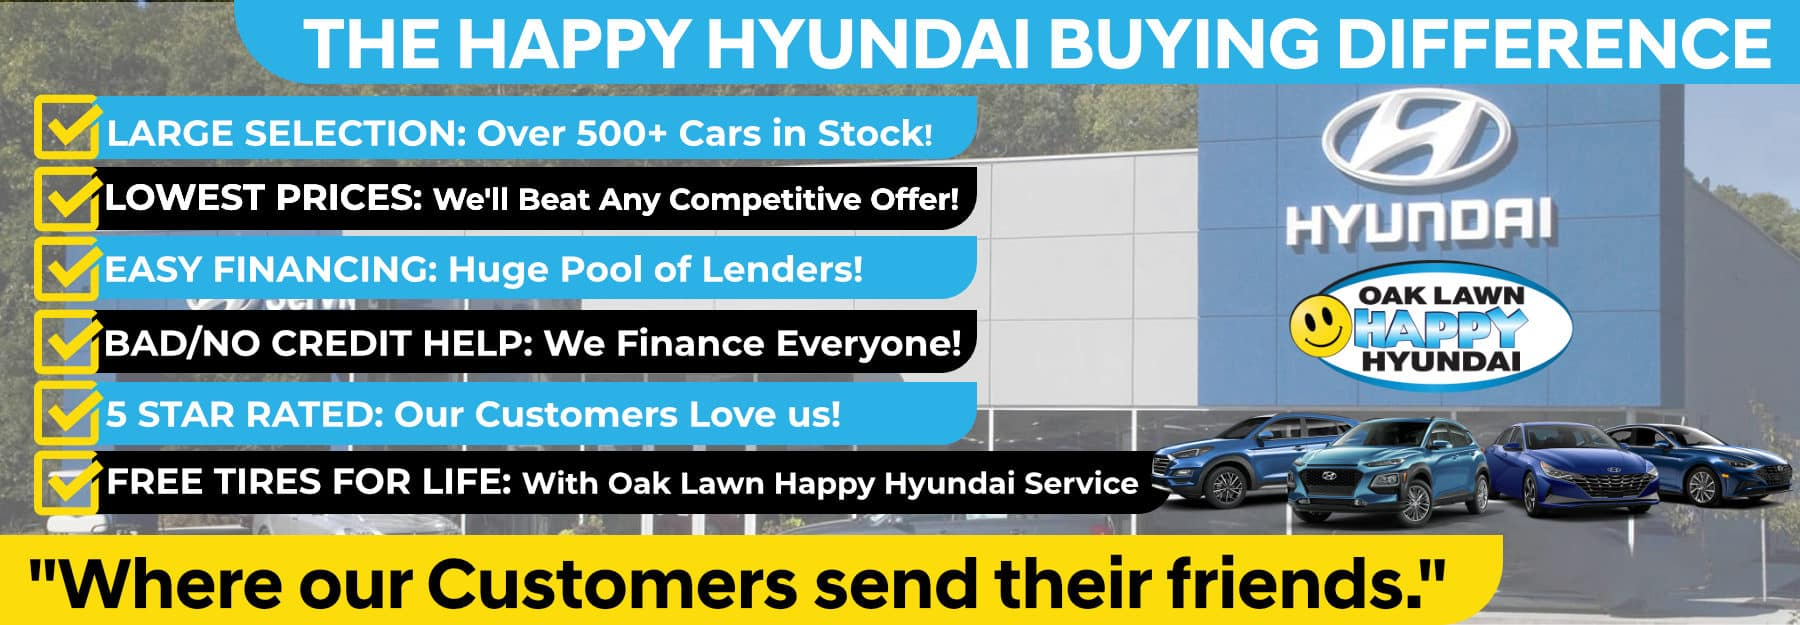 October_2021 Buying Difference Happy Hyundai